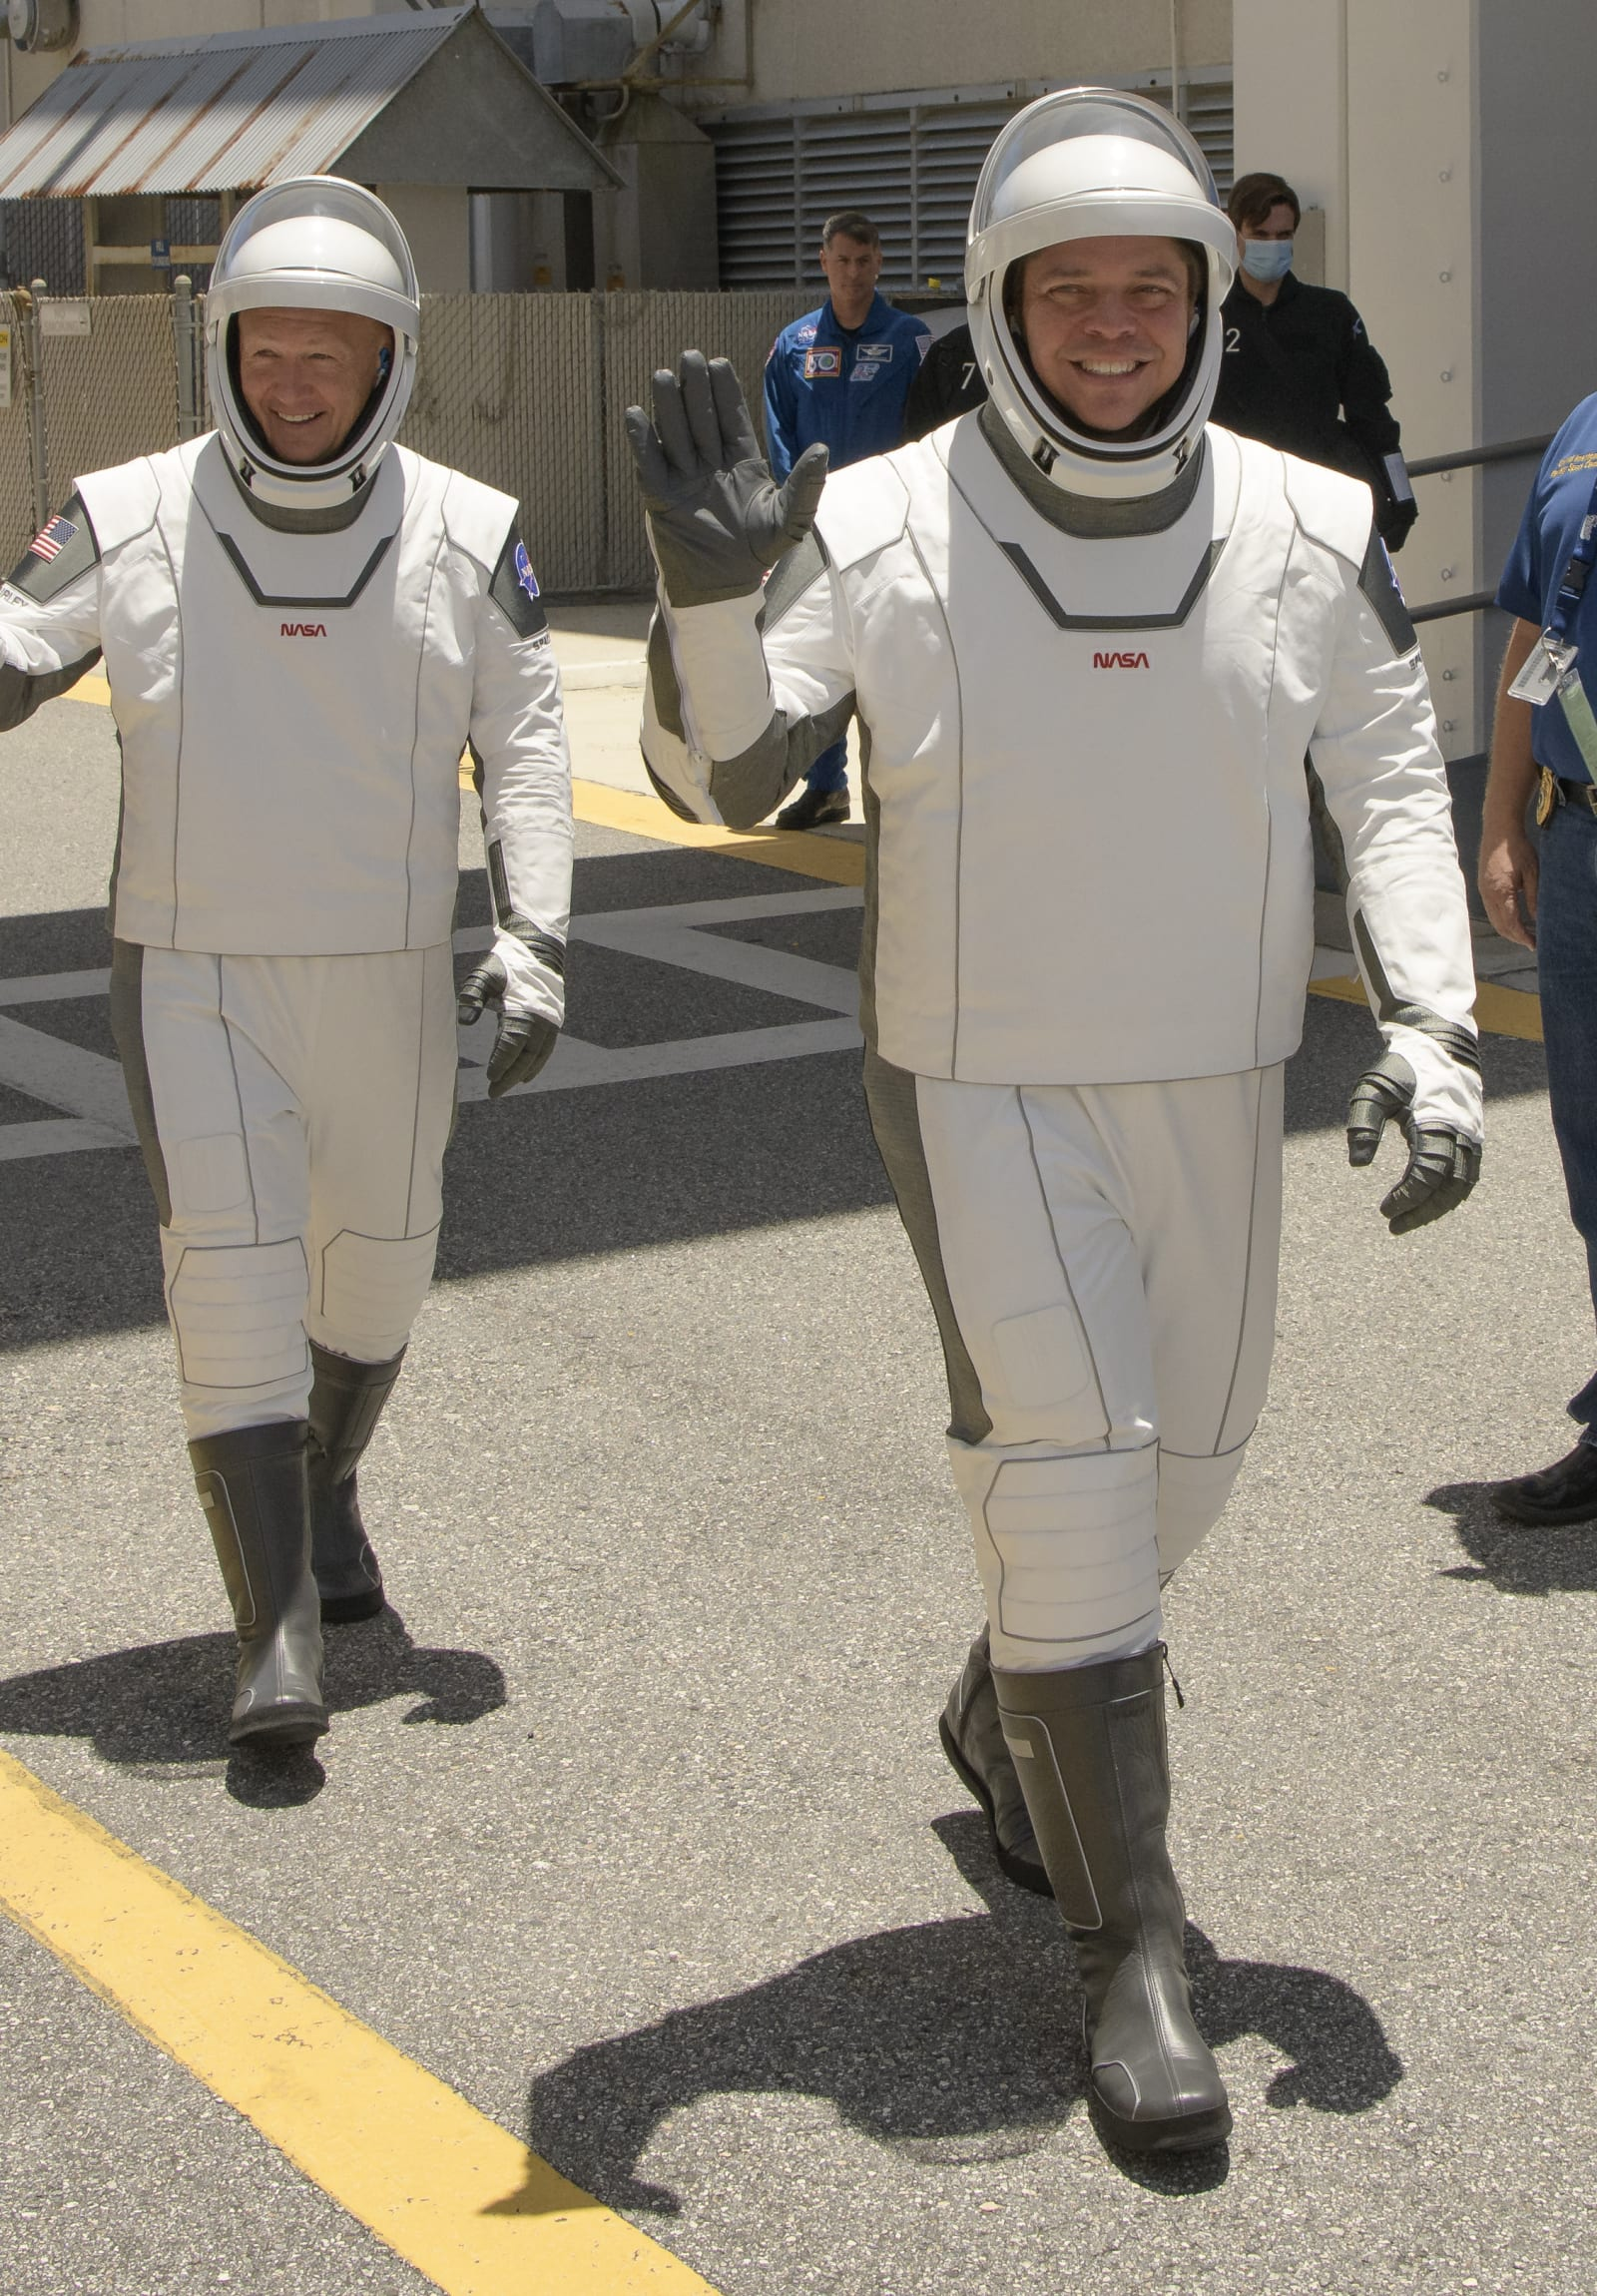 Astronauts will fly SpaceX's cool capsule in fashionable ...